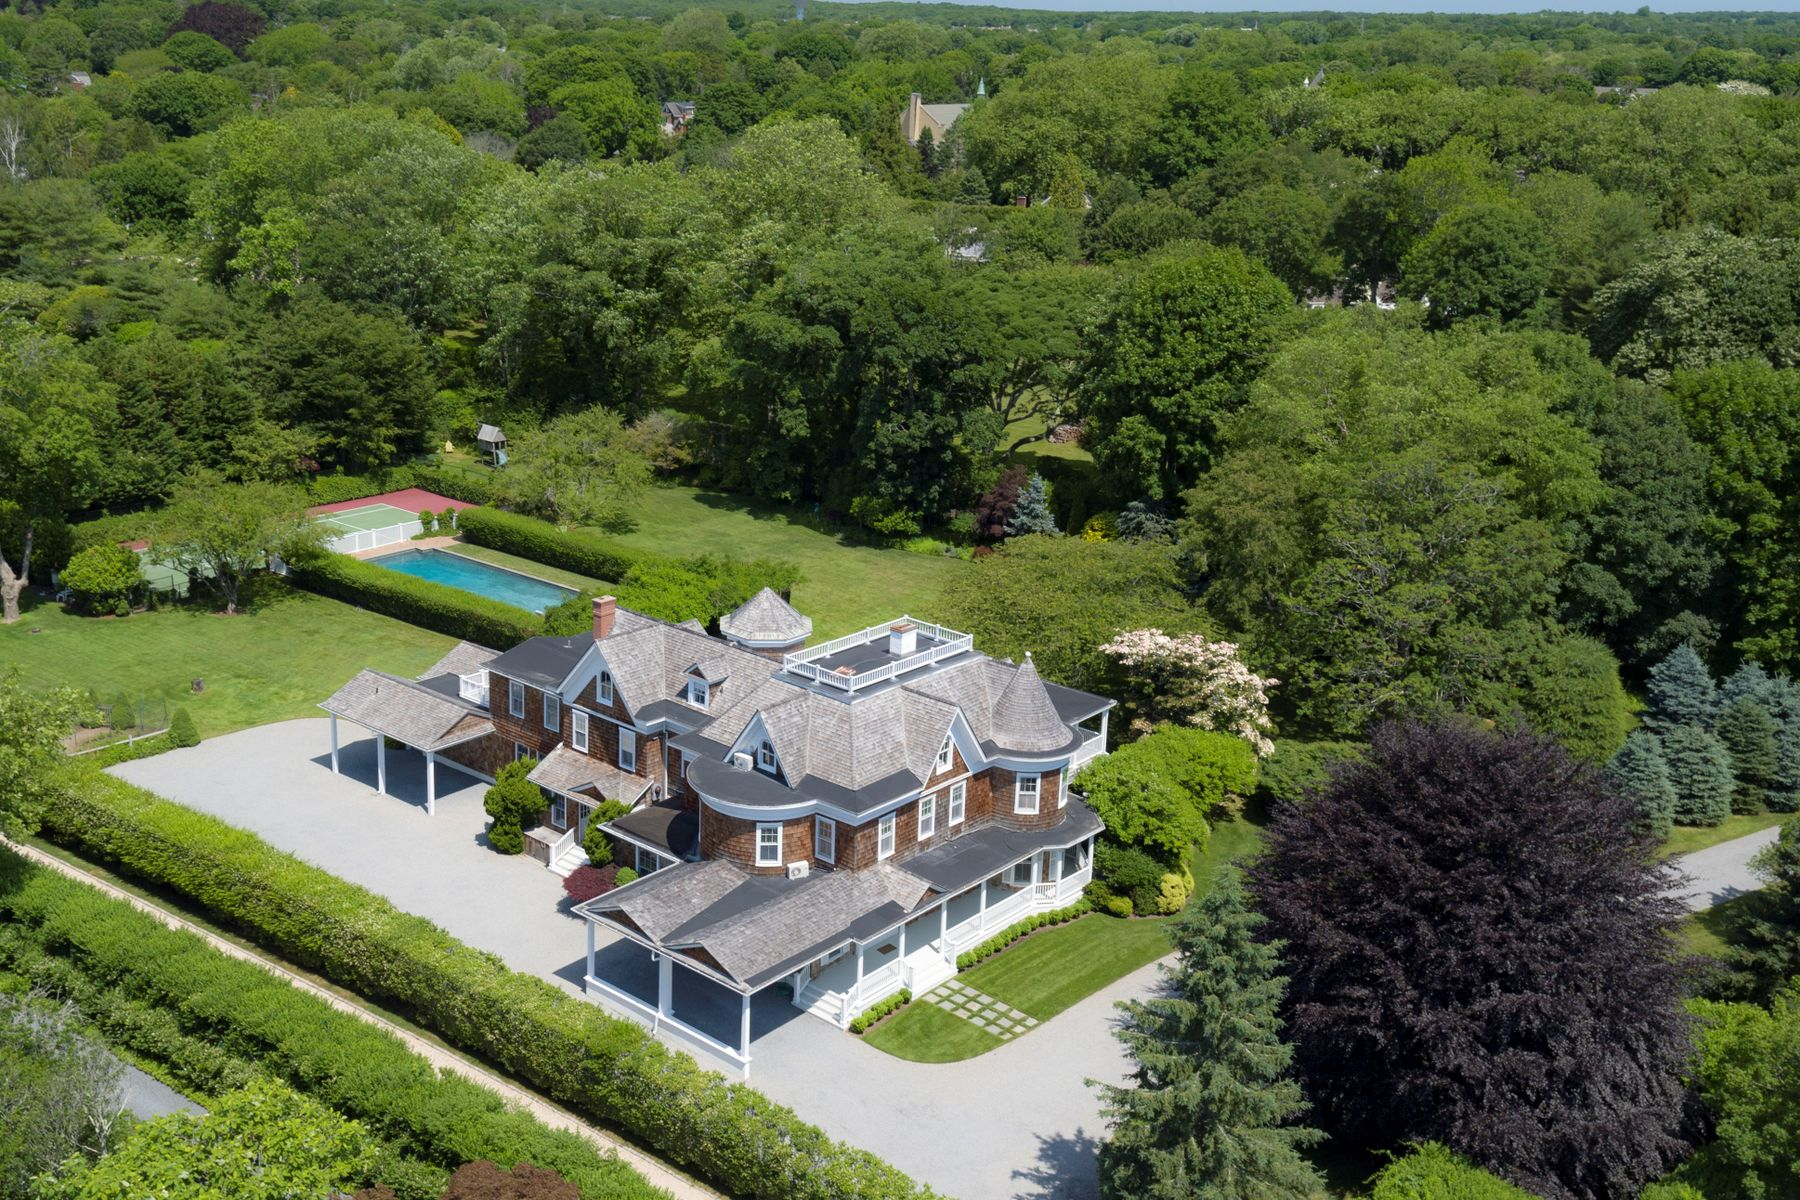 Single Family Home for Sale at Better Than New Southampton Estate 75 First Neck Lane Southampton, New York 11968 United States